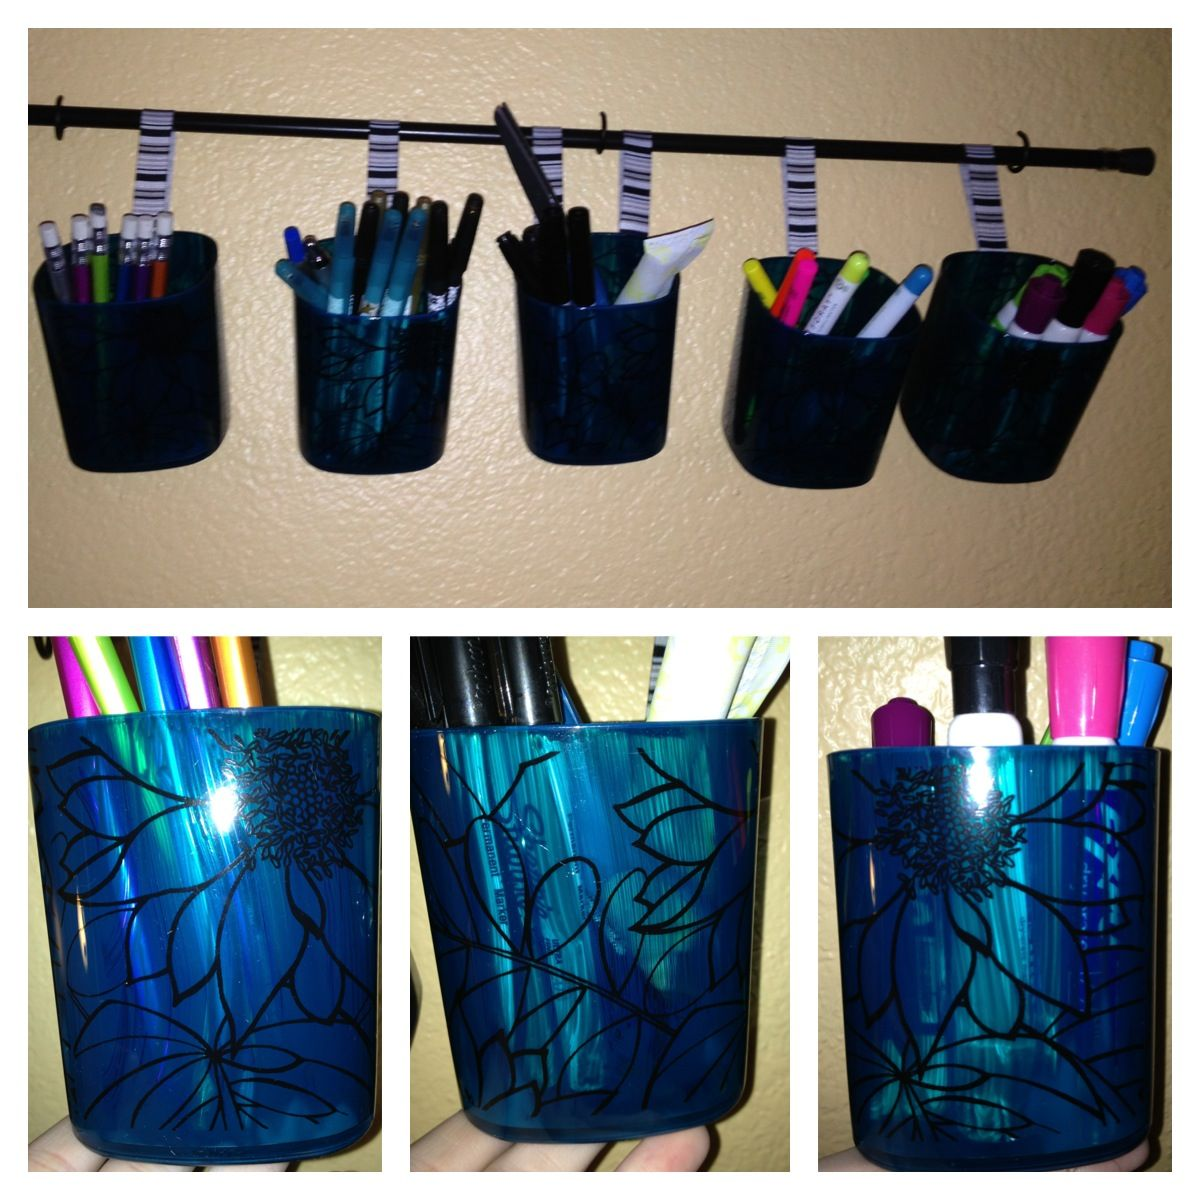 Diy Hanging Pencil Holder Got The Idea From Ikea And Got The